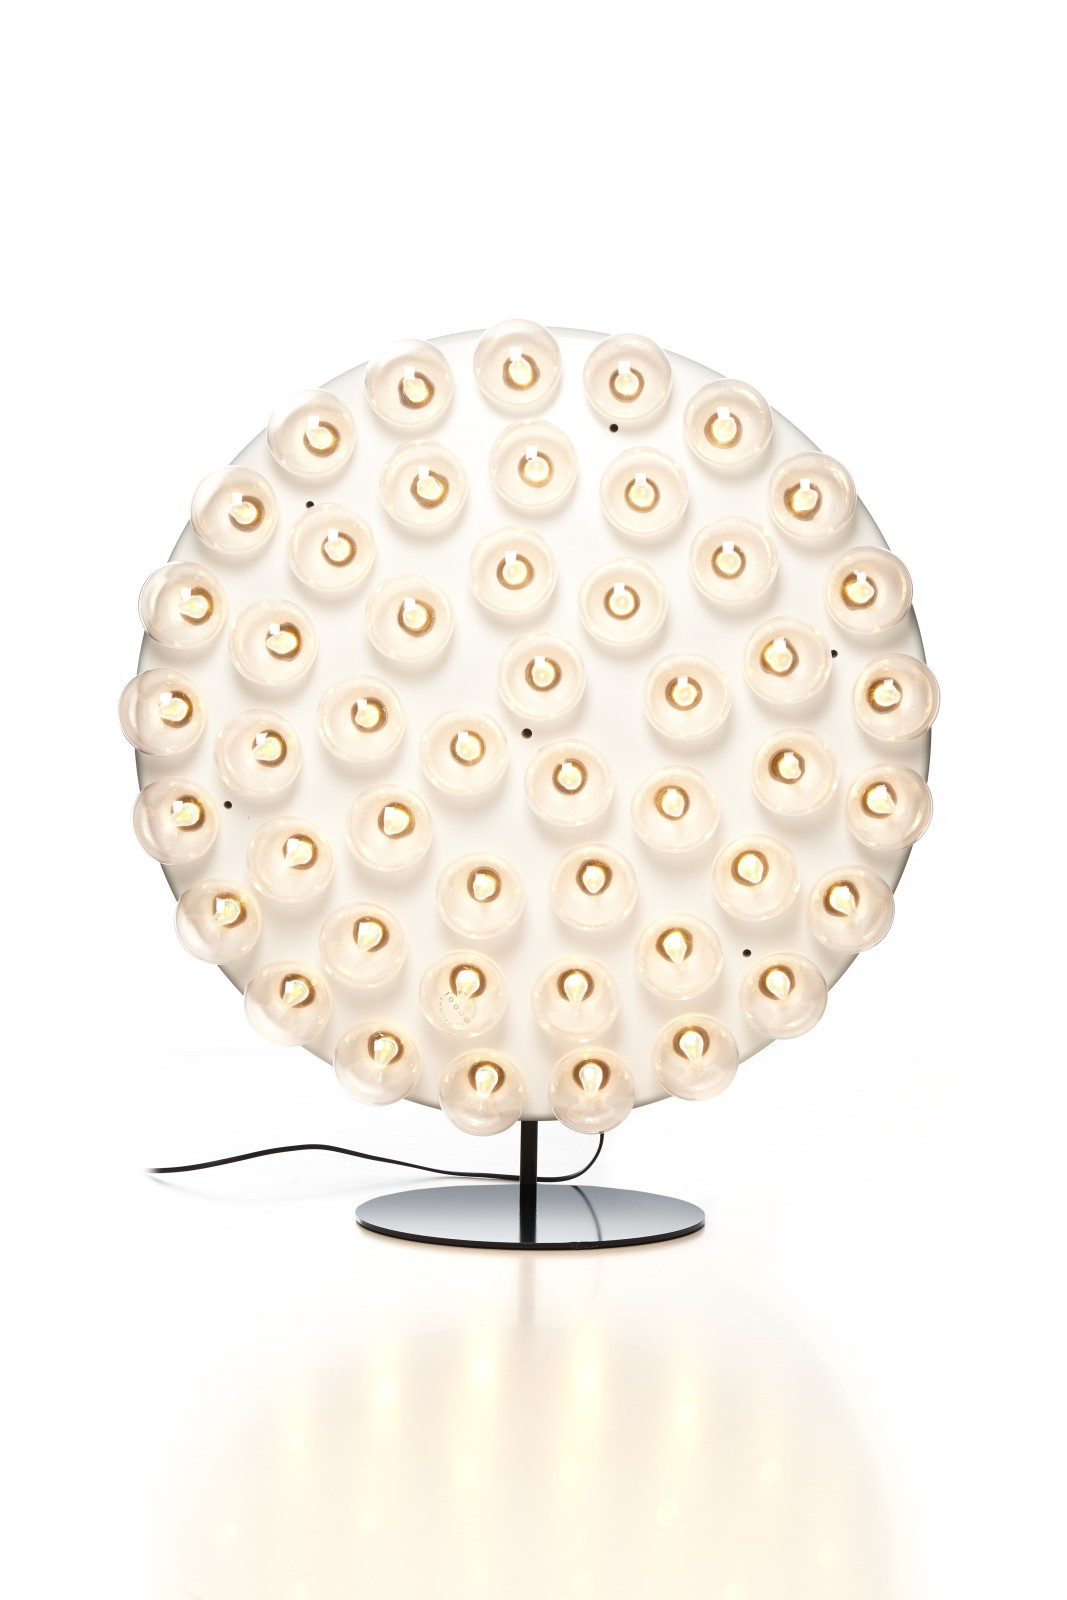 Prop Floor Lamp - Round, Set of 2 2700K